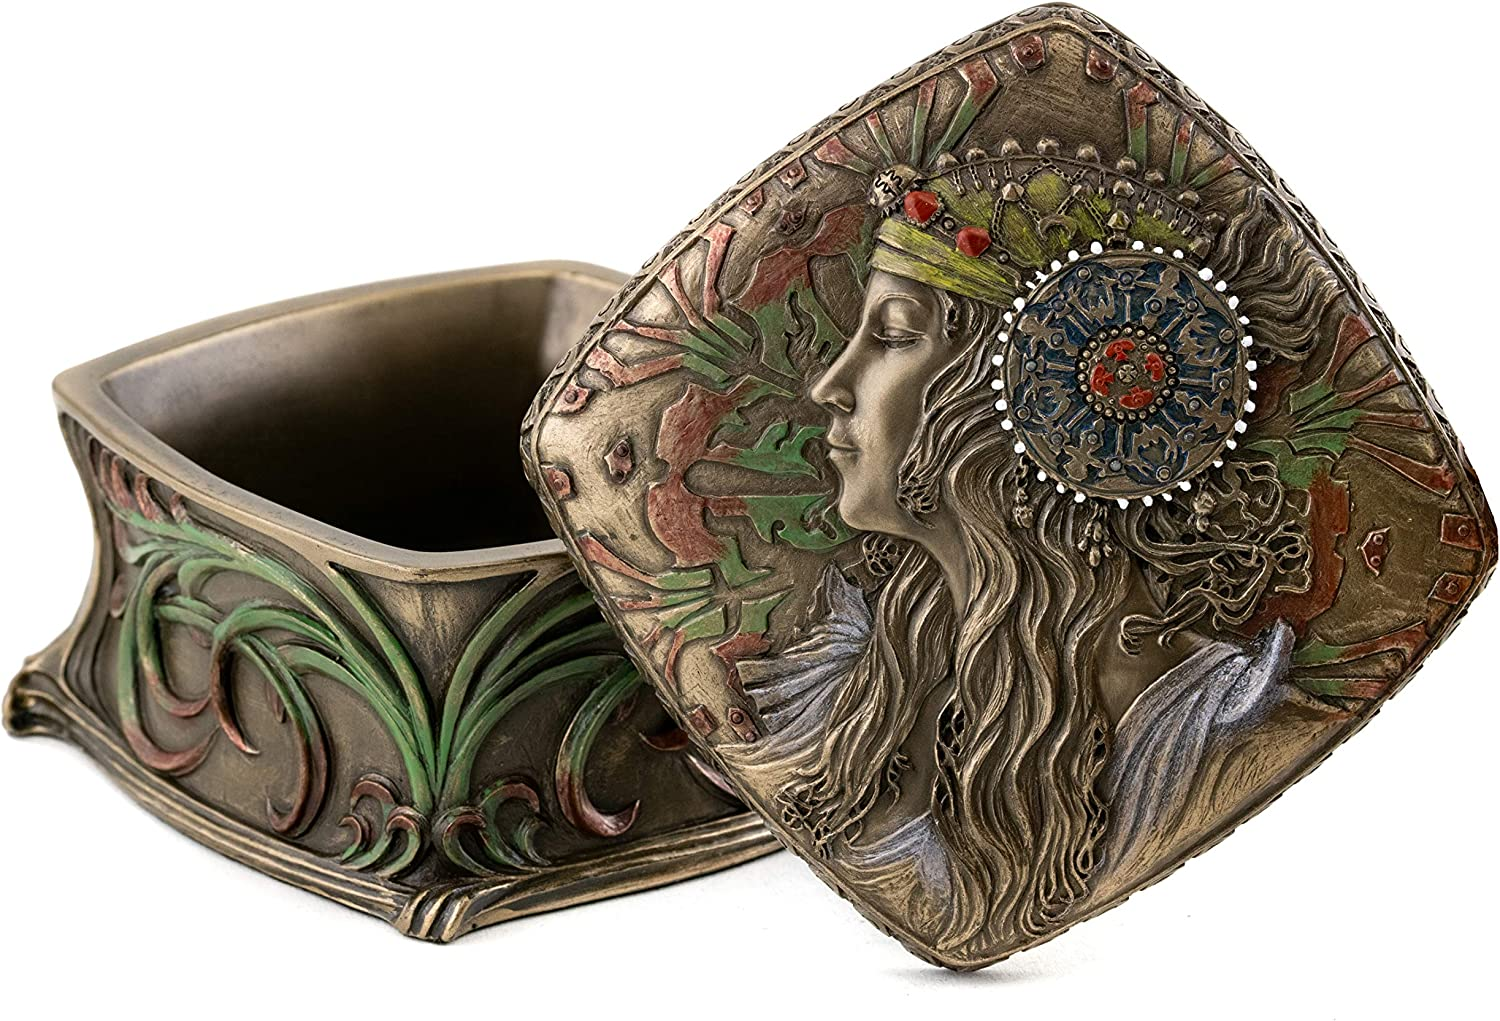 Top Collection Iconic Art Nouveau Antique Replica Collectible Jewelry Box- Decorative French Box in Premium Cold Cast Bronze- 4-Inch Long Ornamental Earring and Necklace Trinket Box